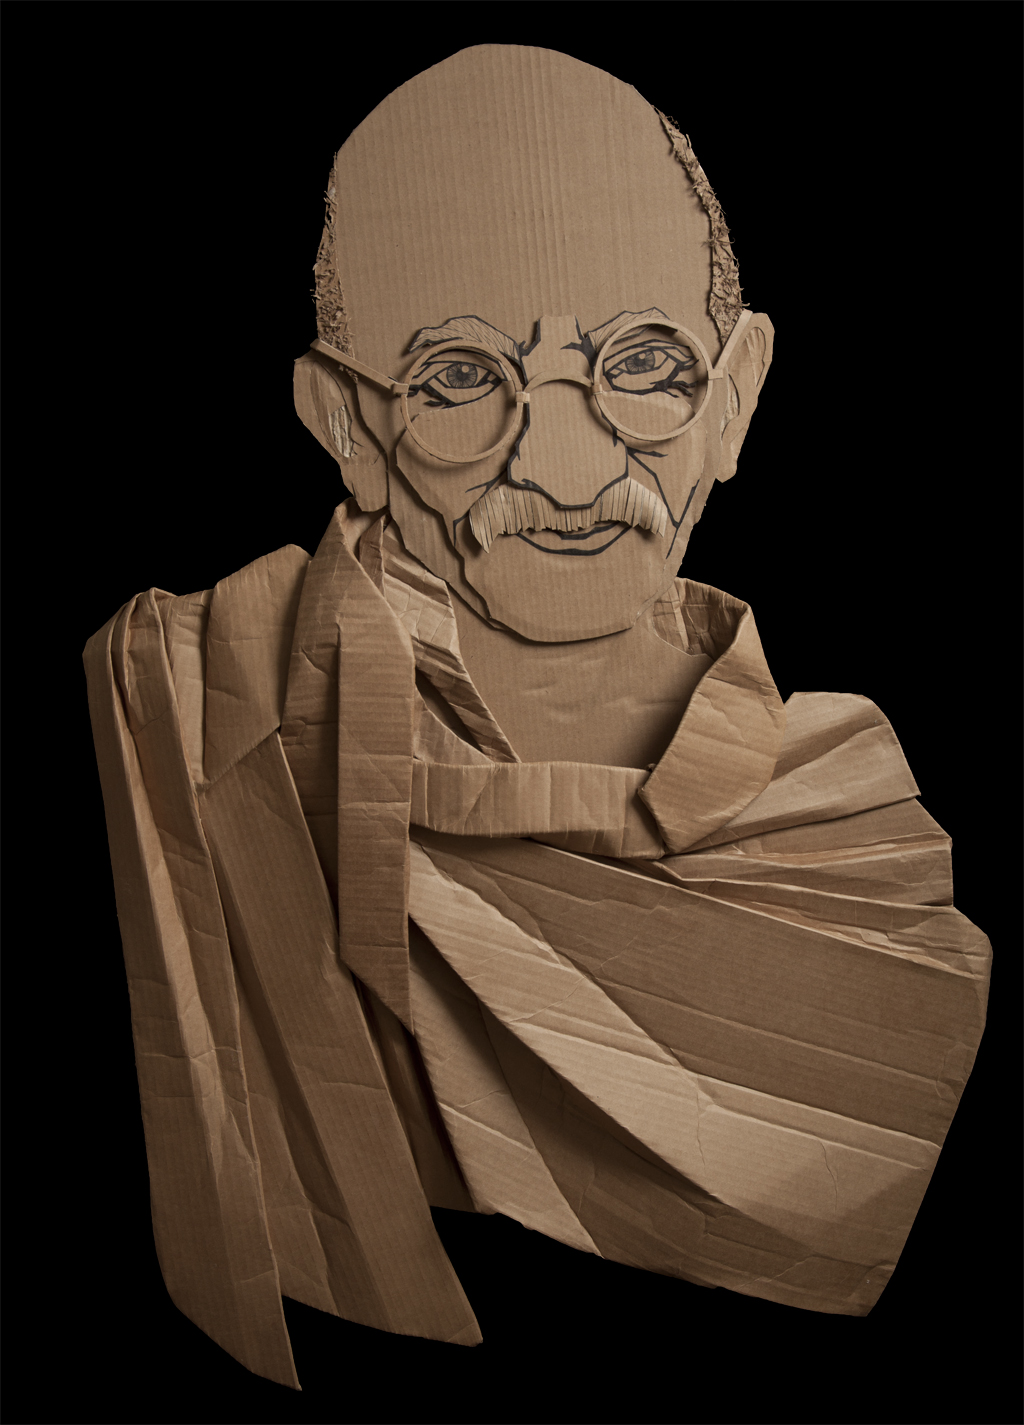 bapu 011 Recycled Art Project by Ali Golzad